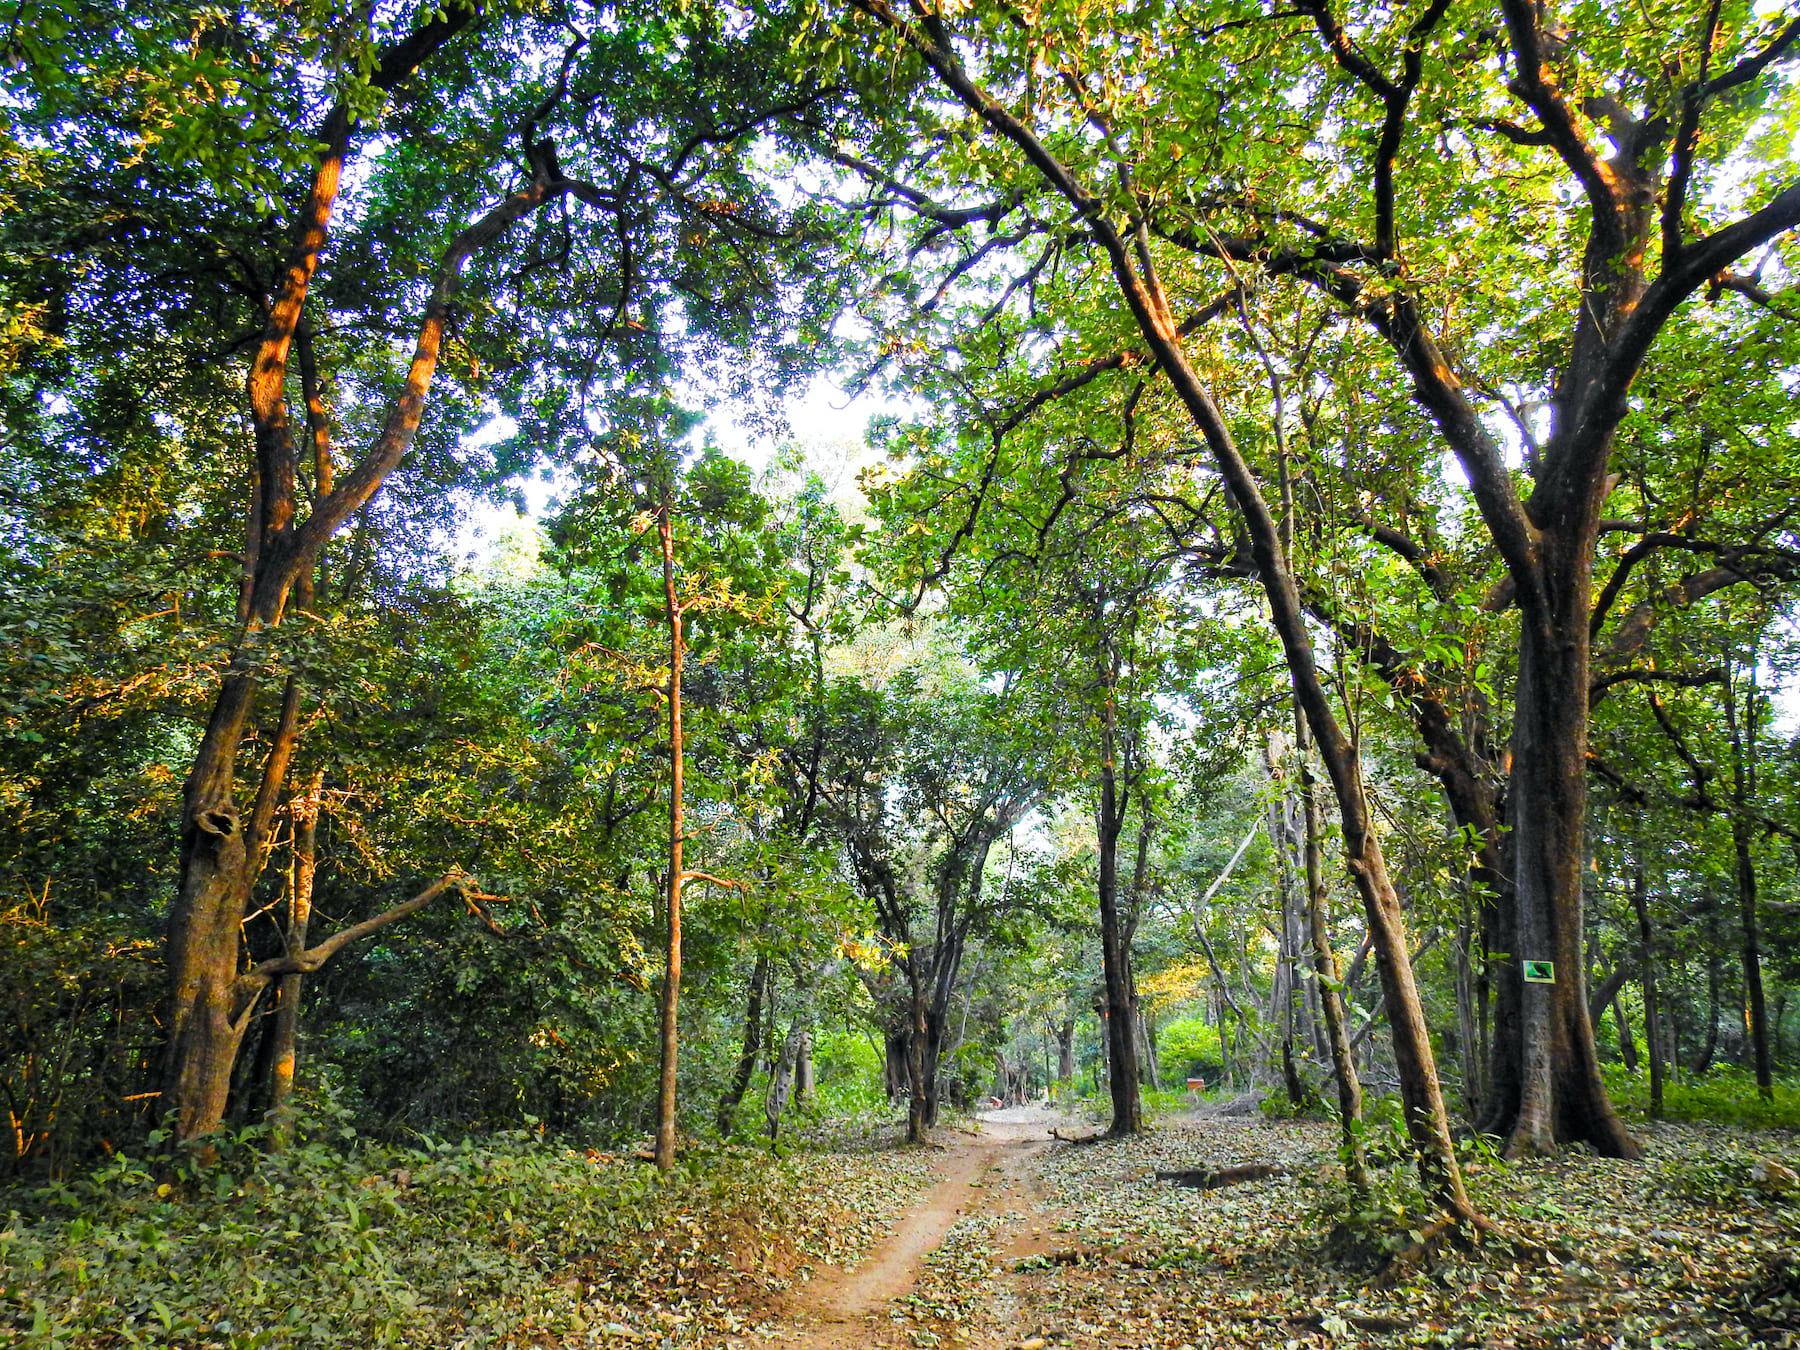 The tropical dry deciduous forest of Sitamata Sanctuary is a pleasure to walk through in any season. Much of the forest floor is blanketed in gently decomposing leaf matter, while the canopy is thick with green leaves. Photo: Dr Sumit Dookia